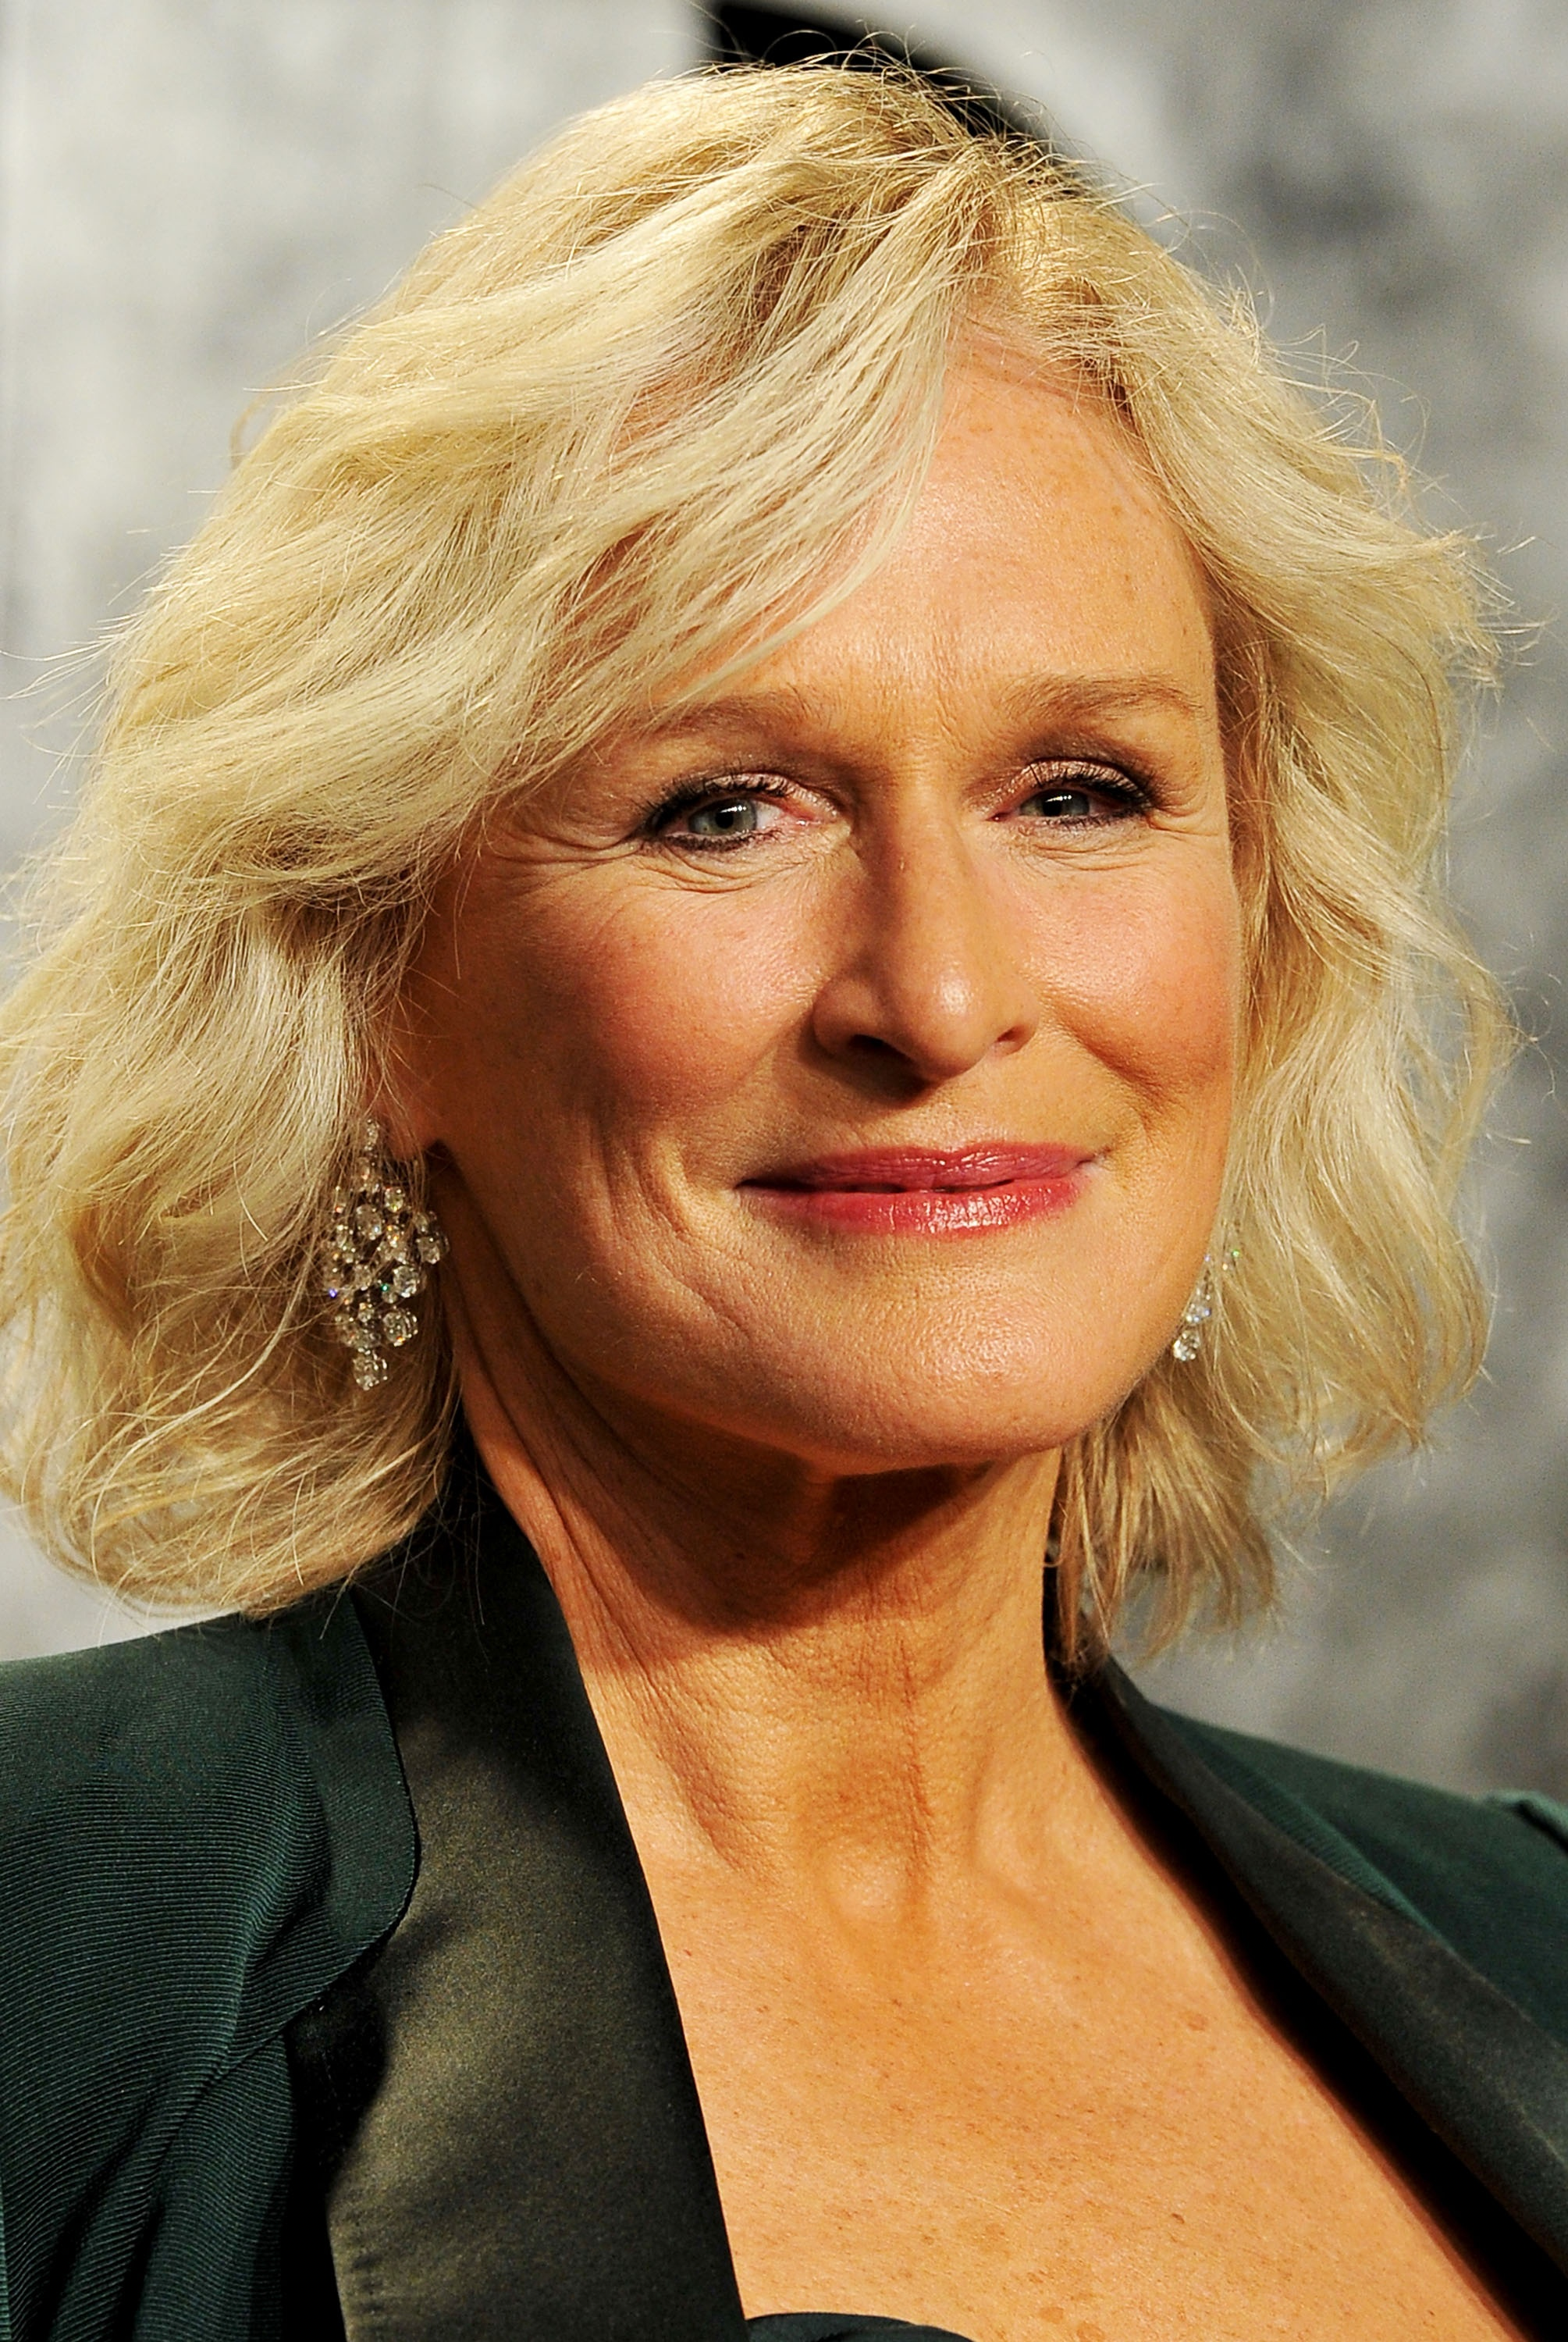 Glenn Close Photo 40 Of 48 Pics Wallpaper Photo 455053